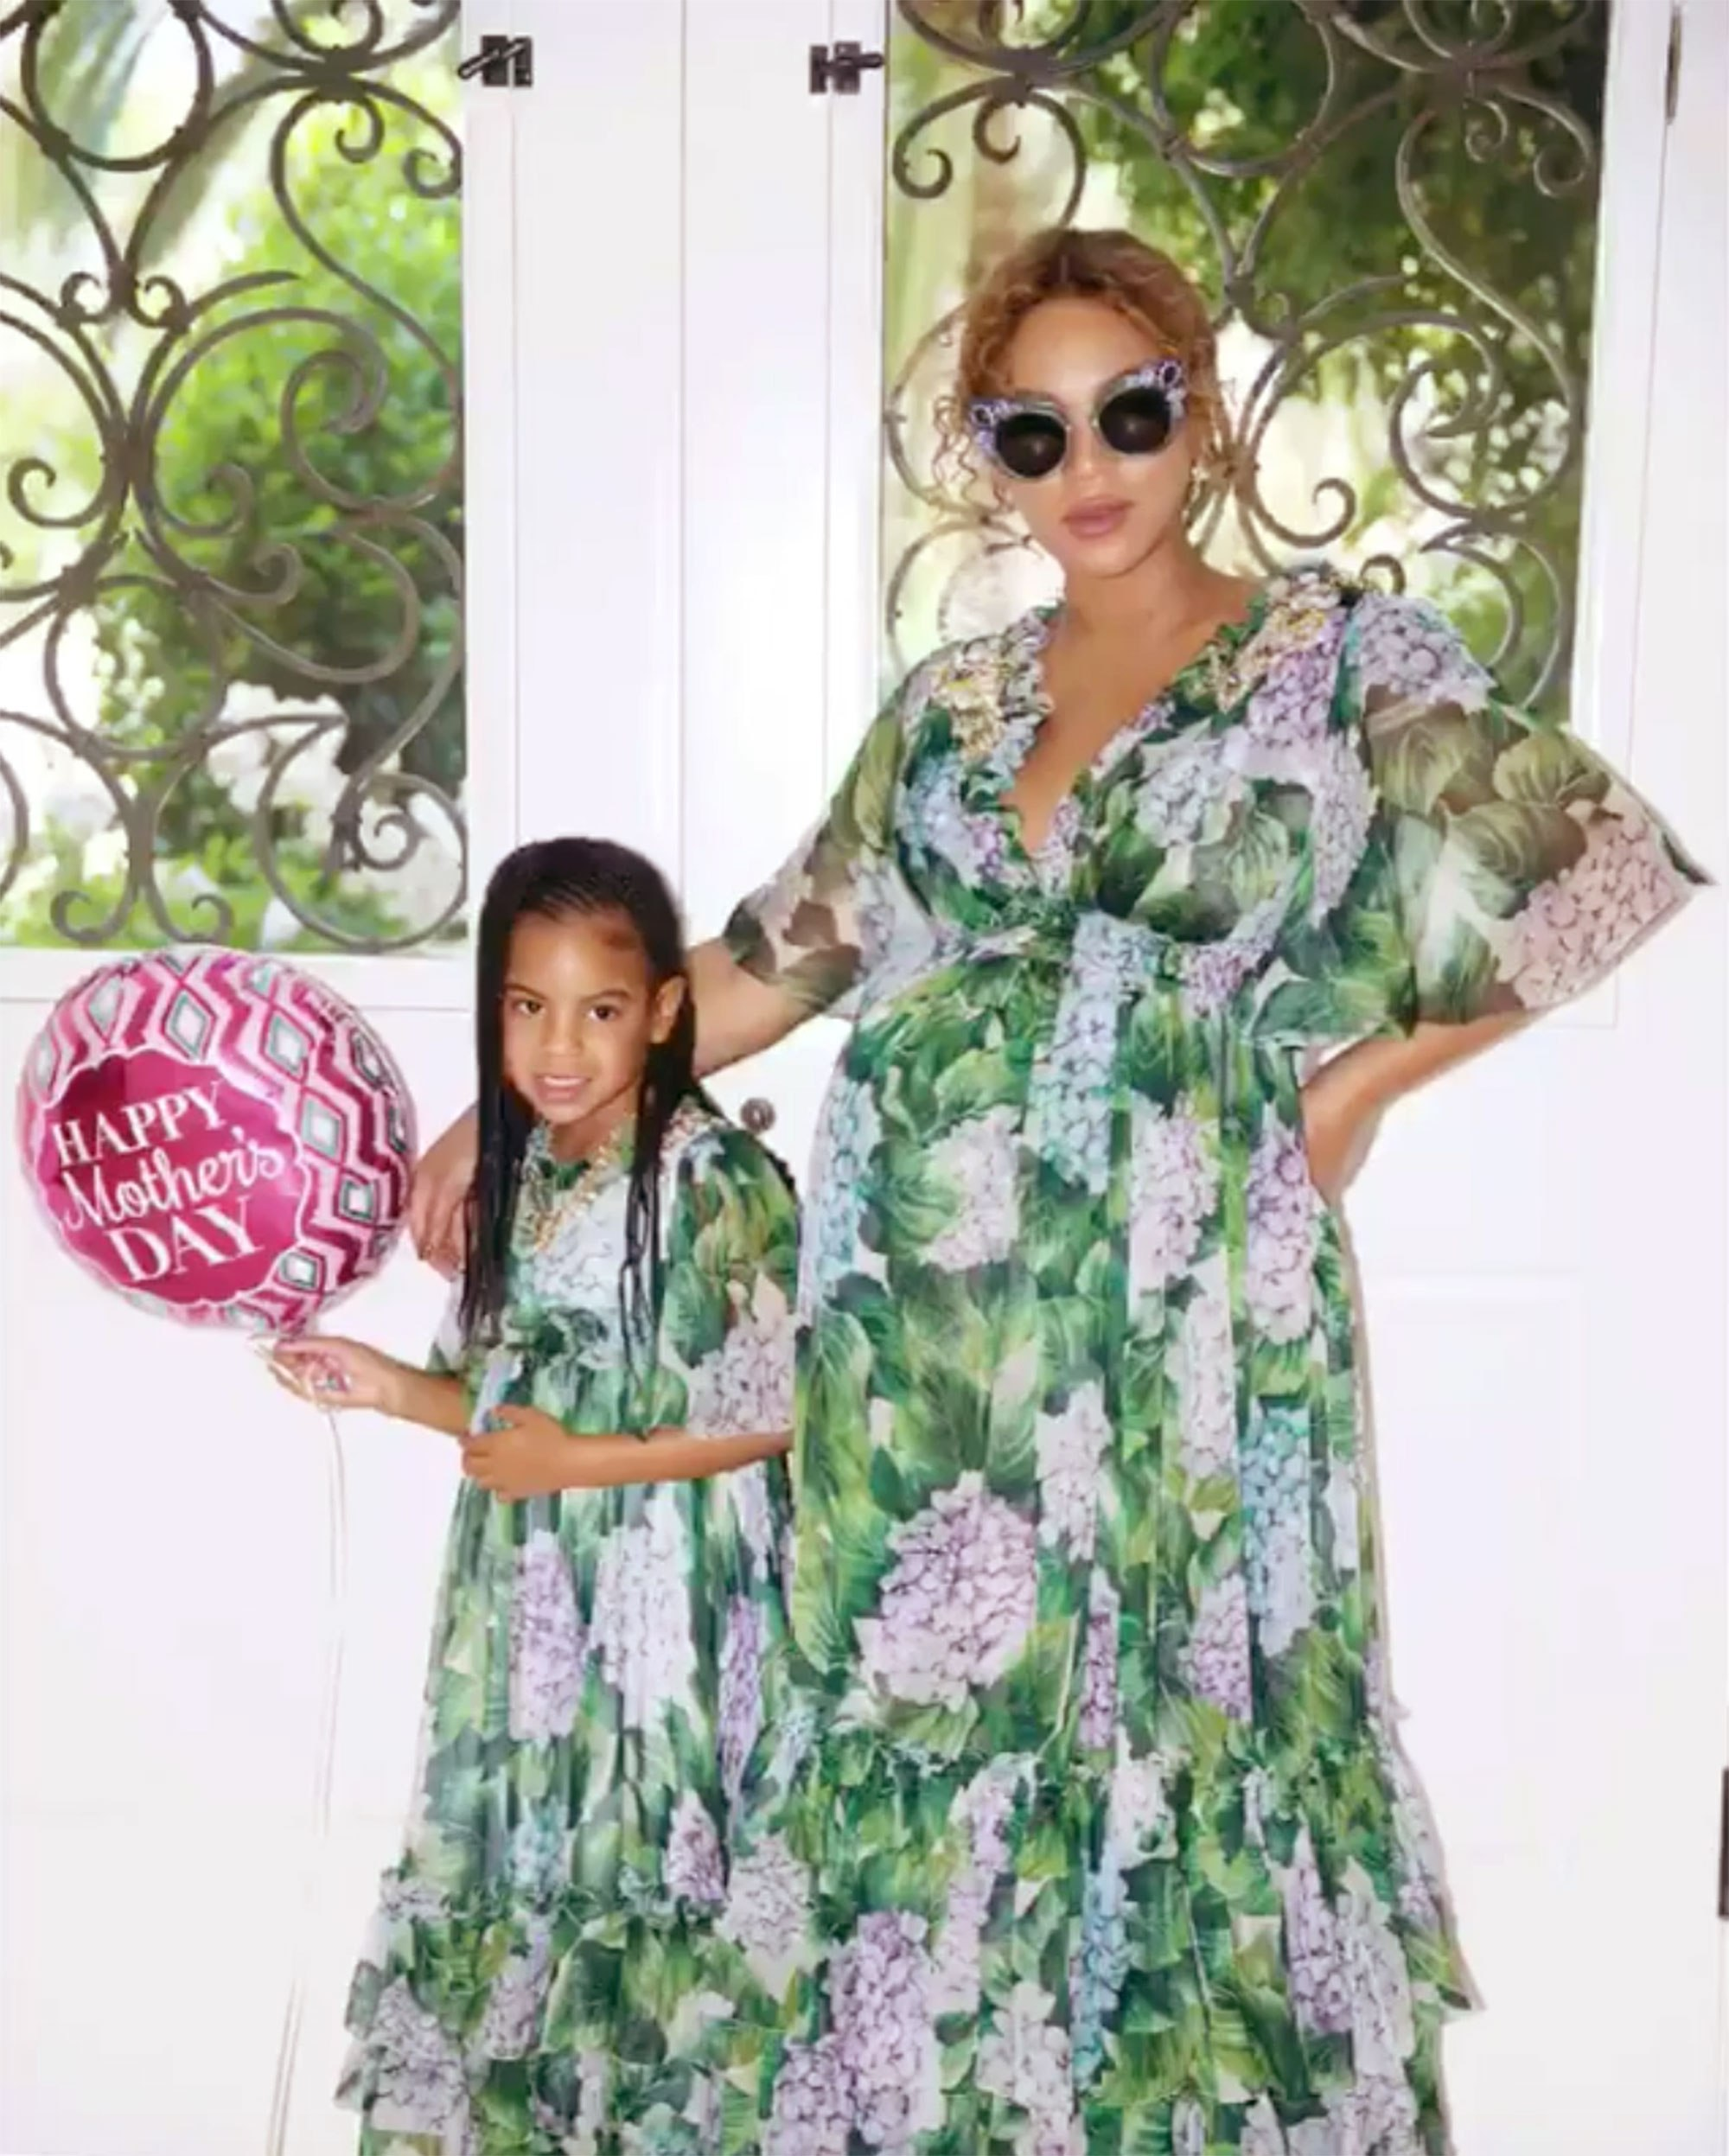 Beyonce and Blue Ivy Wear Matching Mother-Daughter Dolce & Gabbana Dresses https://www.instagram.com/p/BUSx-sfgAjf/ Credit: Beyonce/Instagram